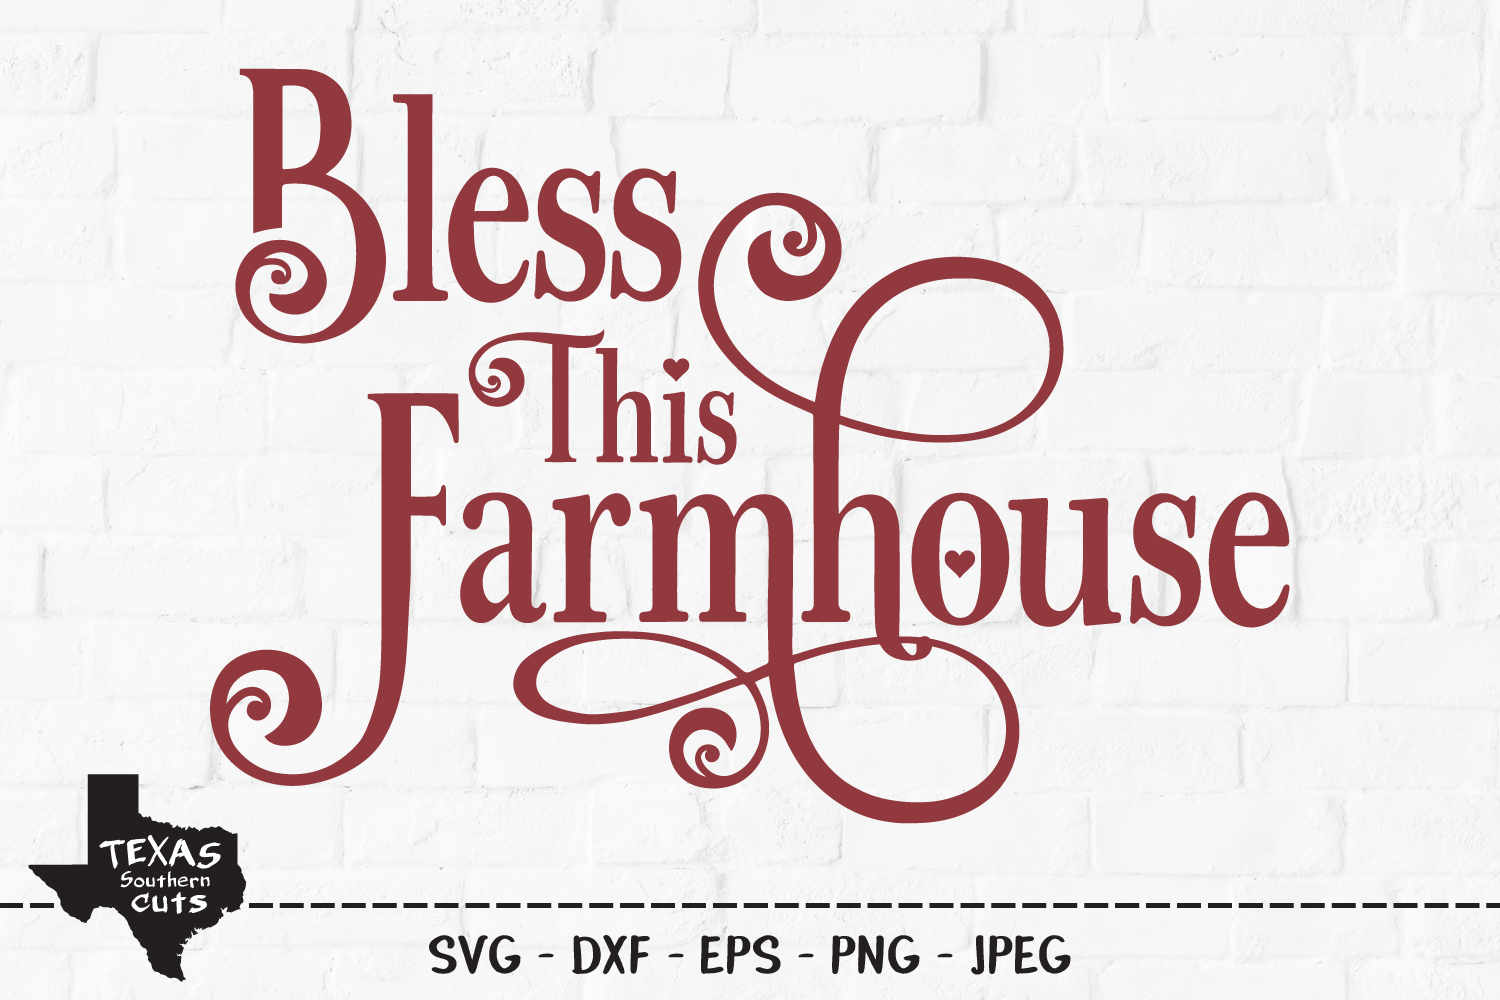 Bless This Farmhouse Country Design Graphic By Texassoutherncuts Creative Fabrica